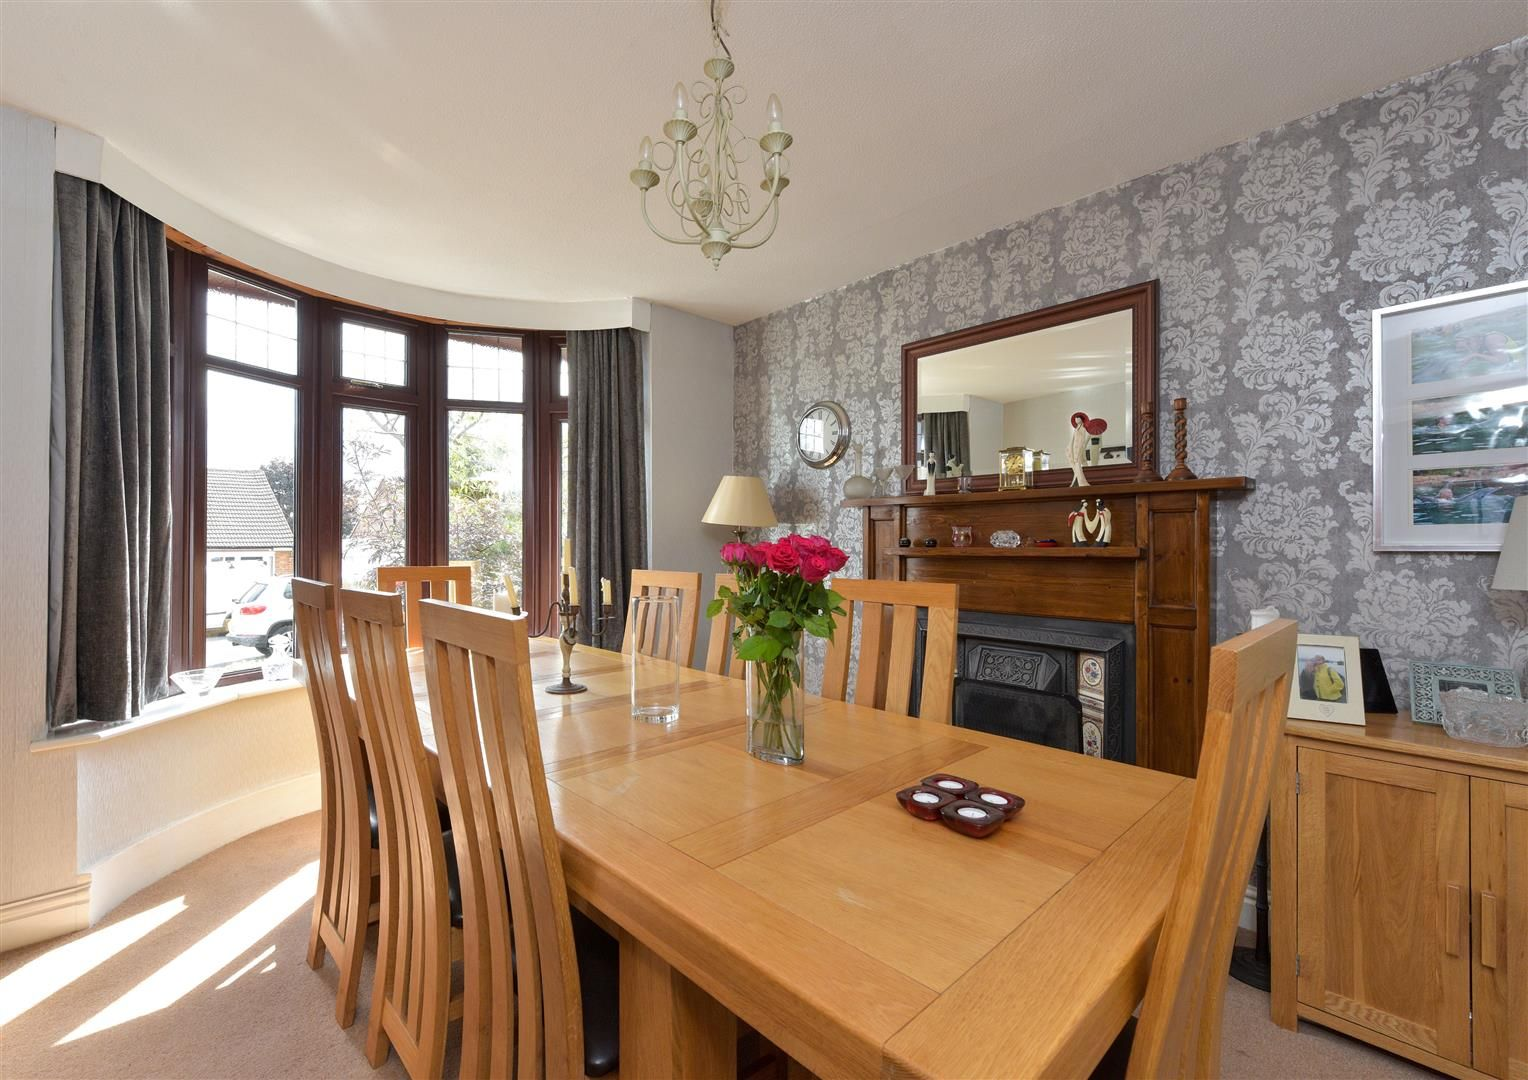 5 bed semi-detached for sale 4